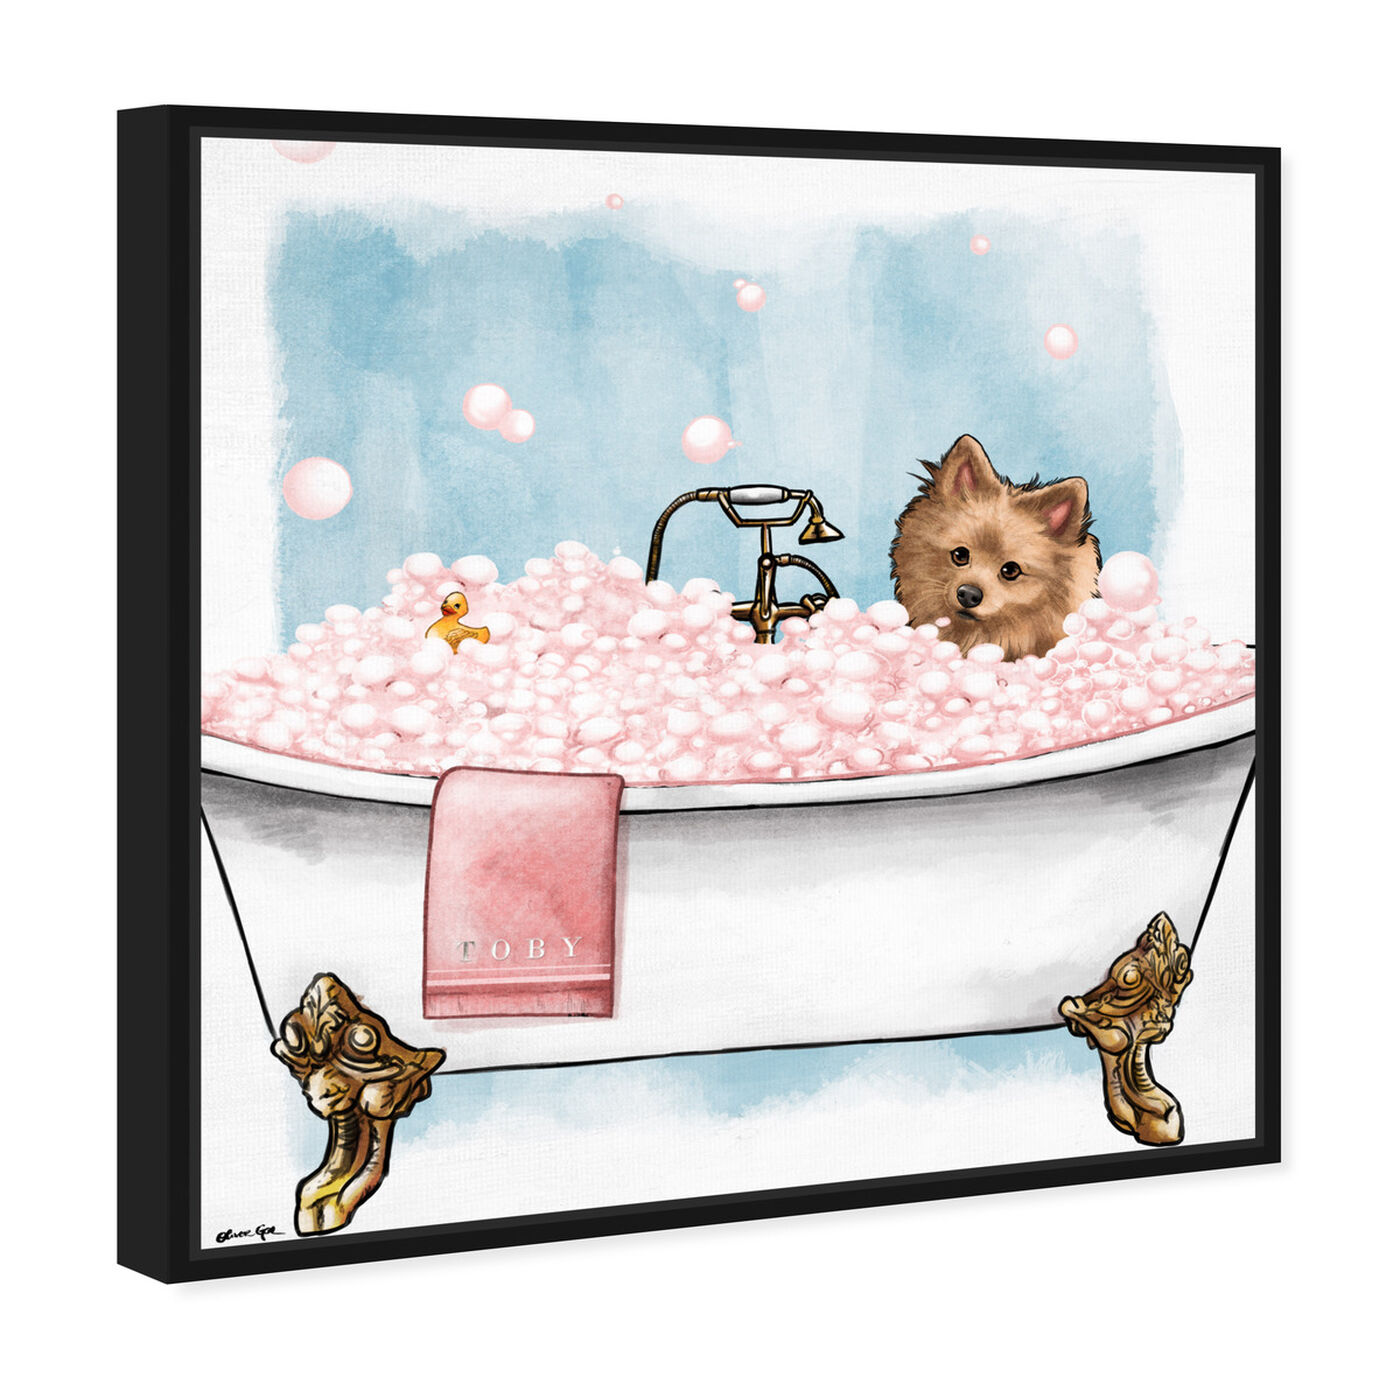 Angled view of Pets in the tub featuring bath and laundry and bathtubs art.